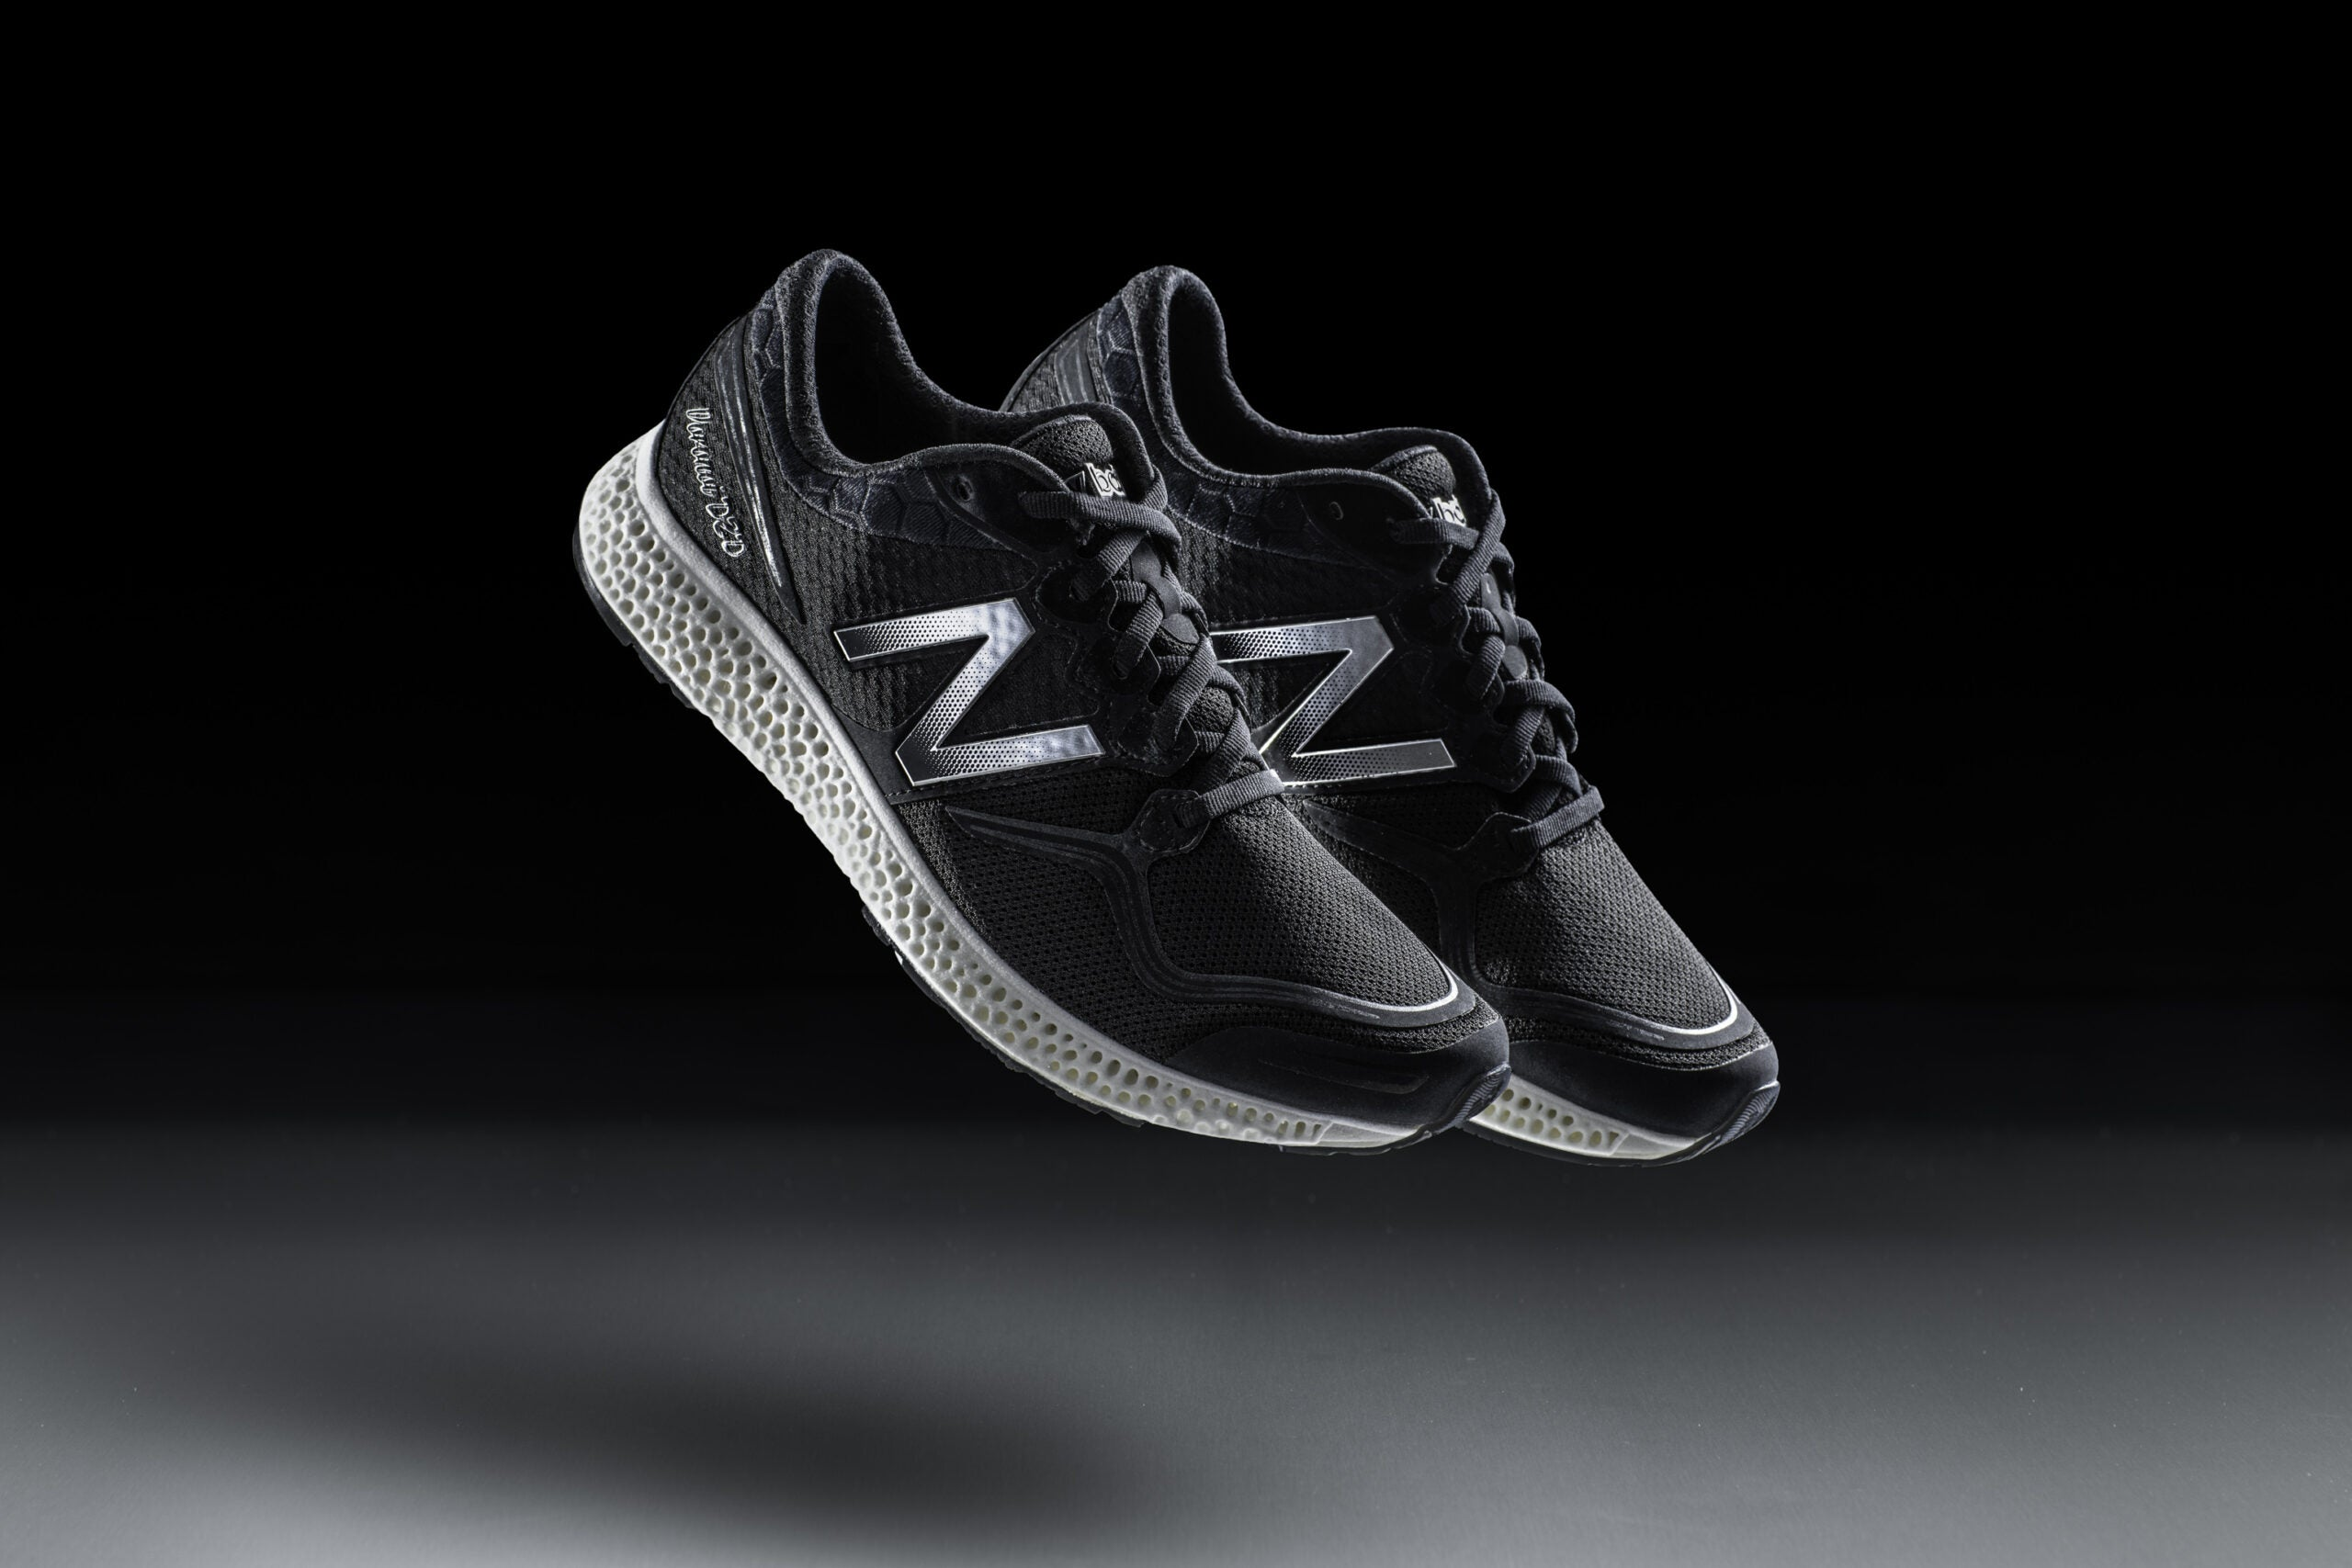 New Balance Plans To Sell A 3D Printed Sneaker In Early 2016